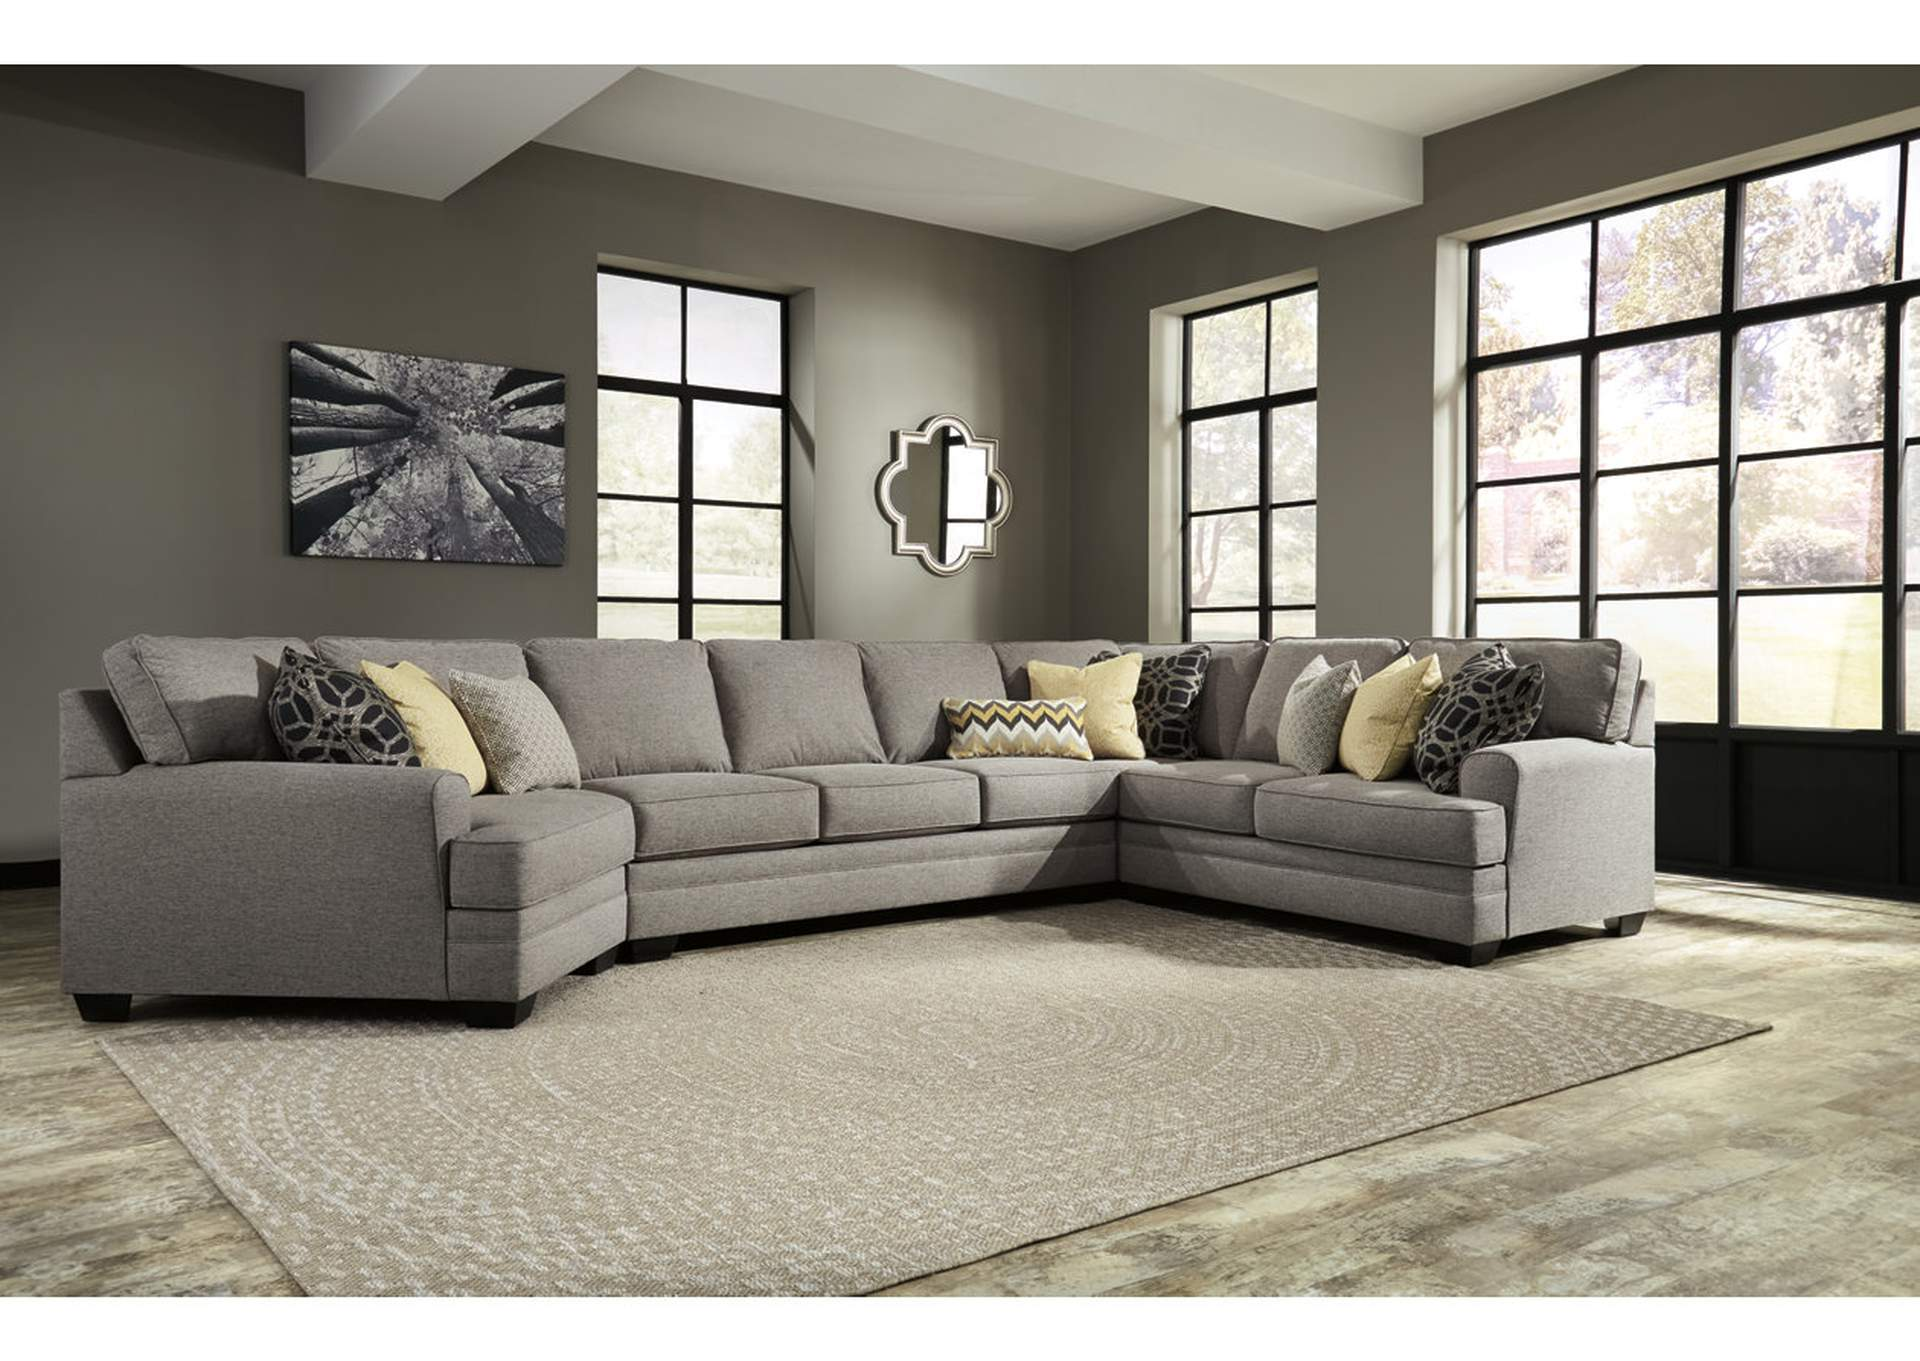 Regal House Furniture Outlet   New Bedford, MA Cresson Pewter Left Facing  Cuddler Loveseat Sectional